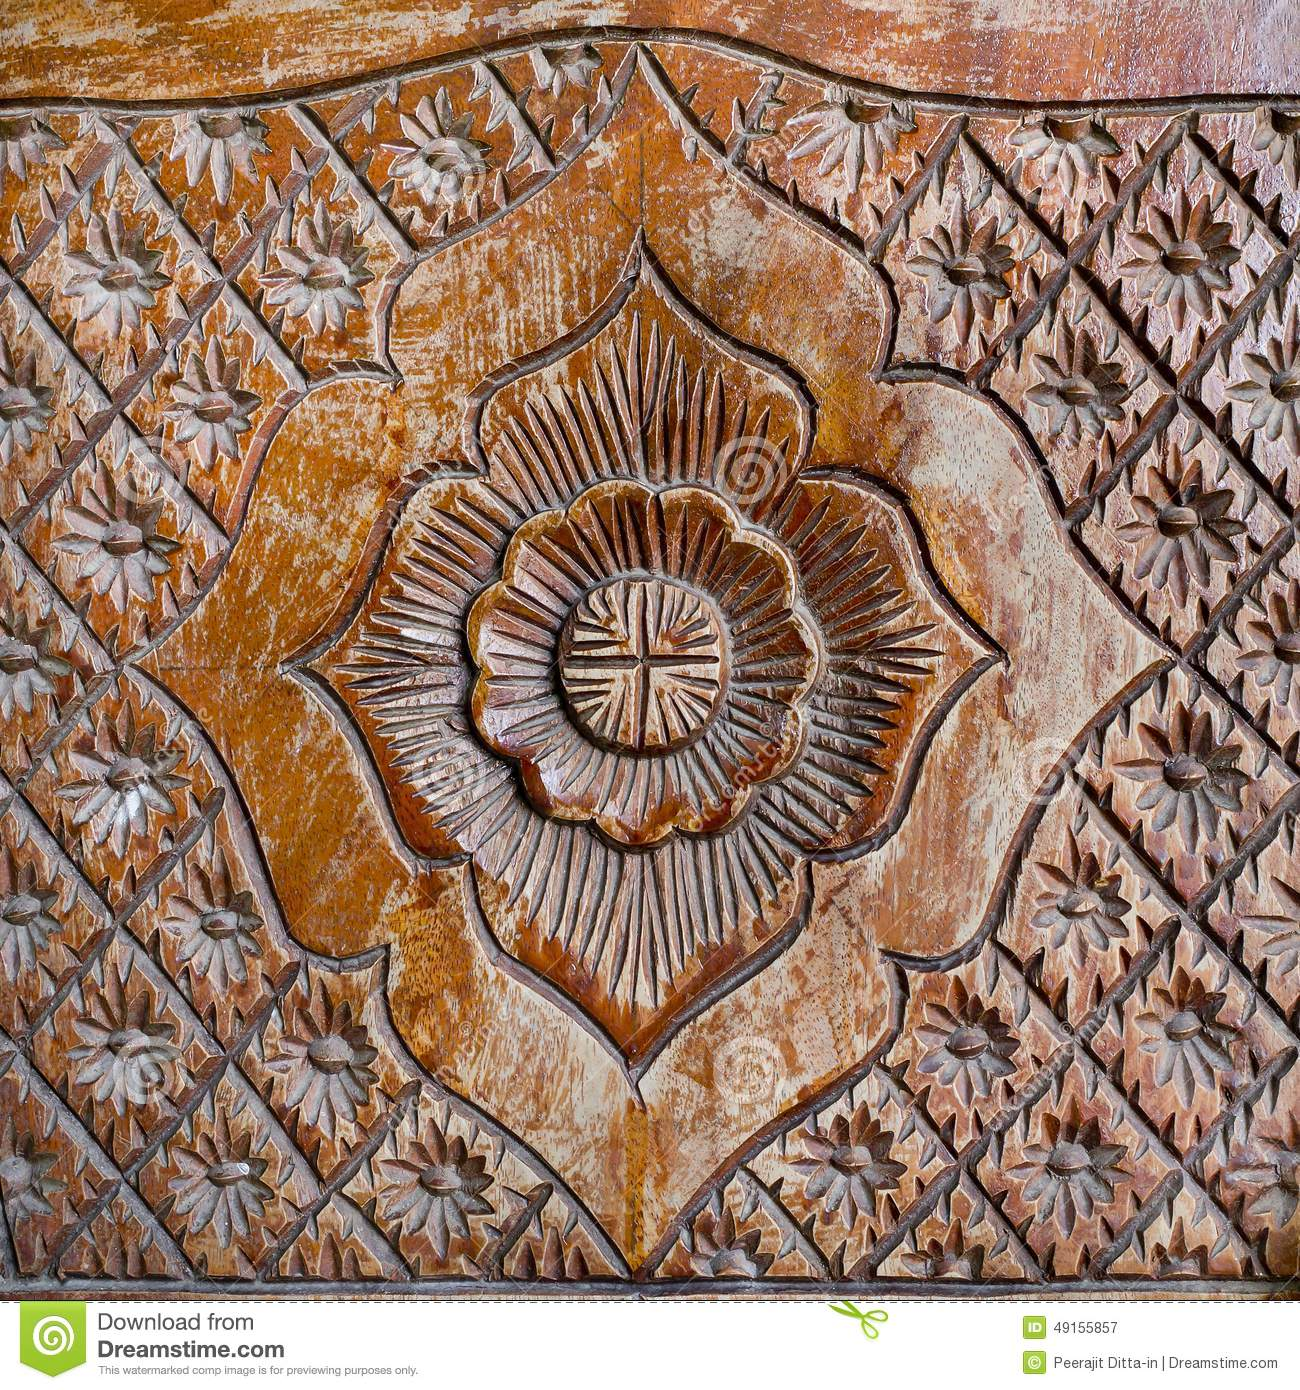 Download Pattern Of Flower Carved On Wood Background Stock Image